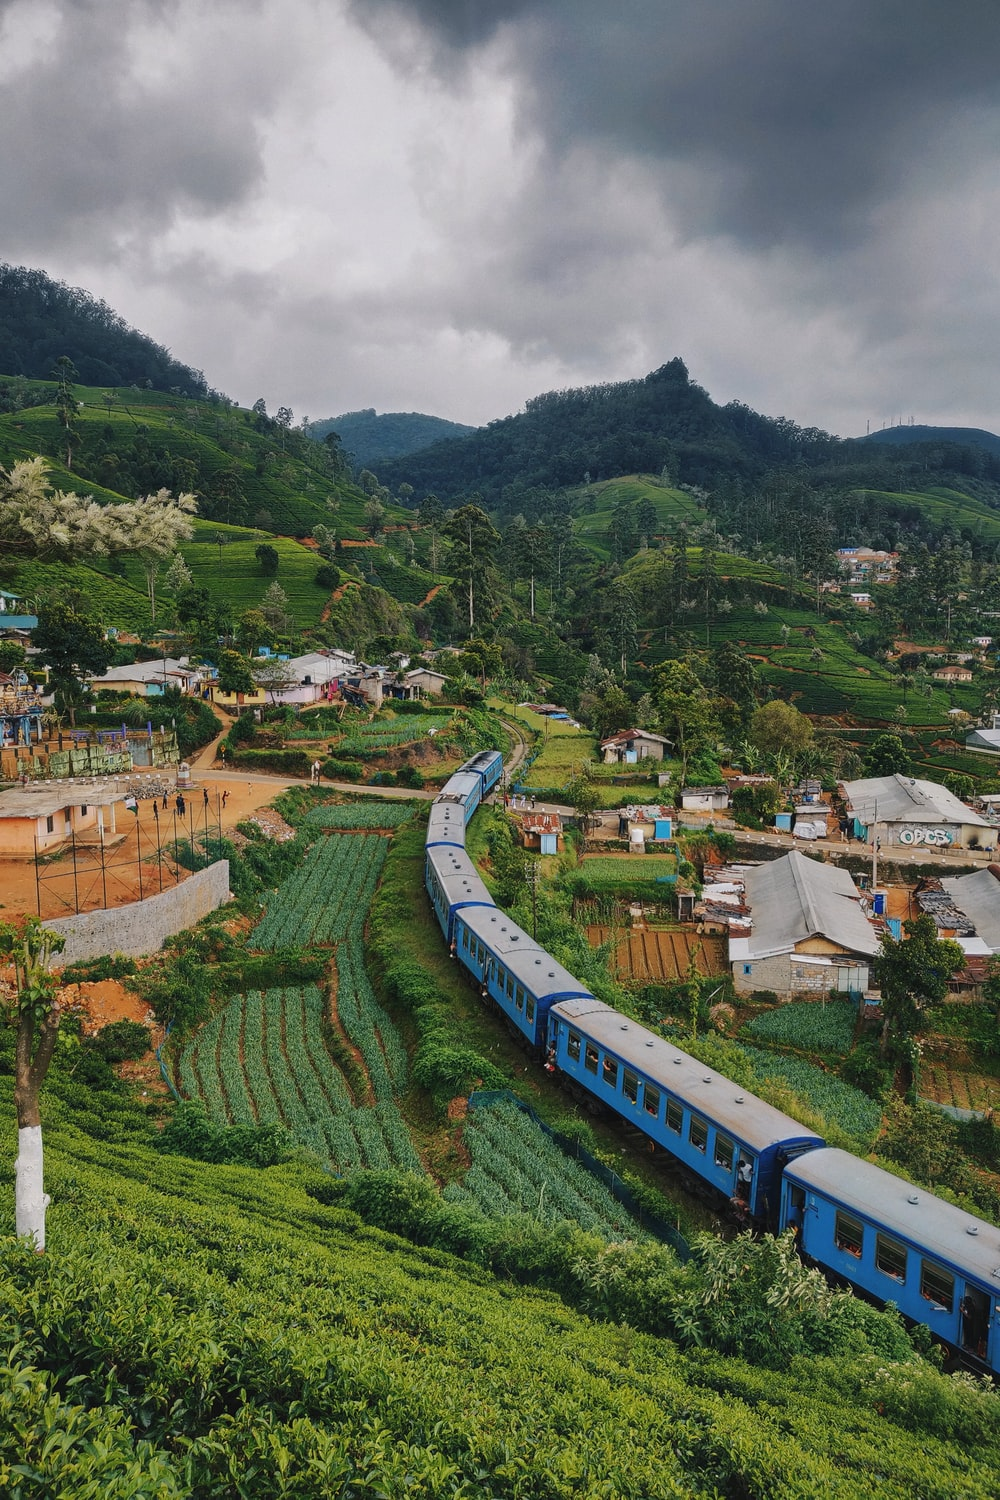 blue train travelling near houses